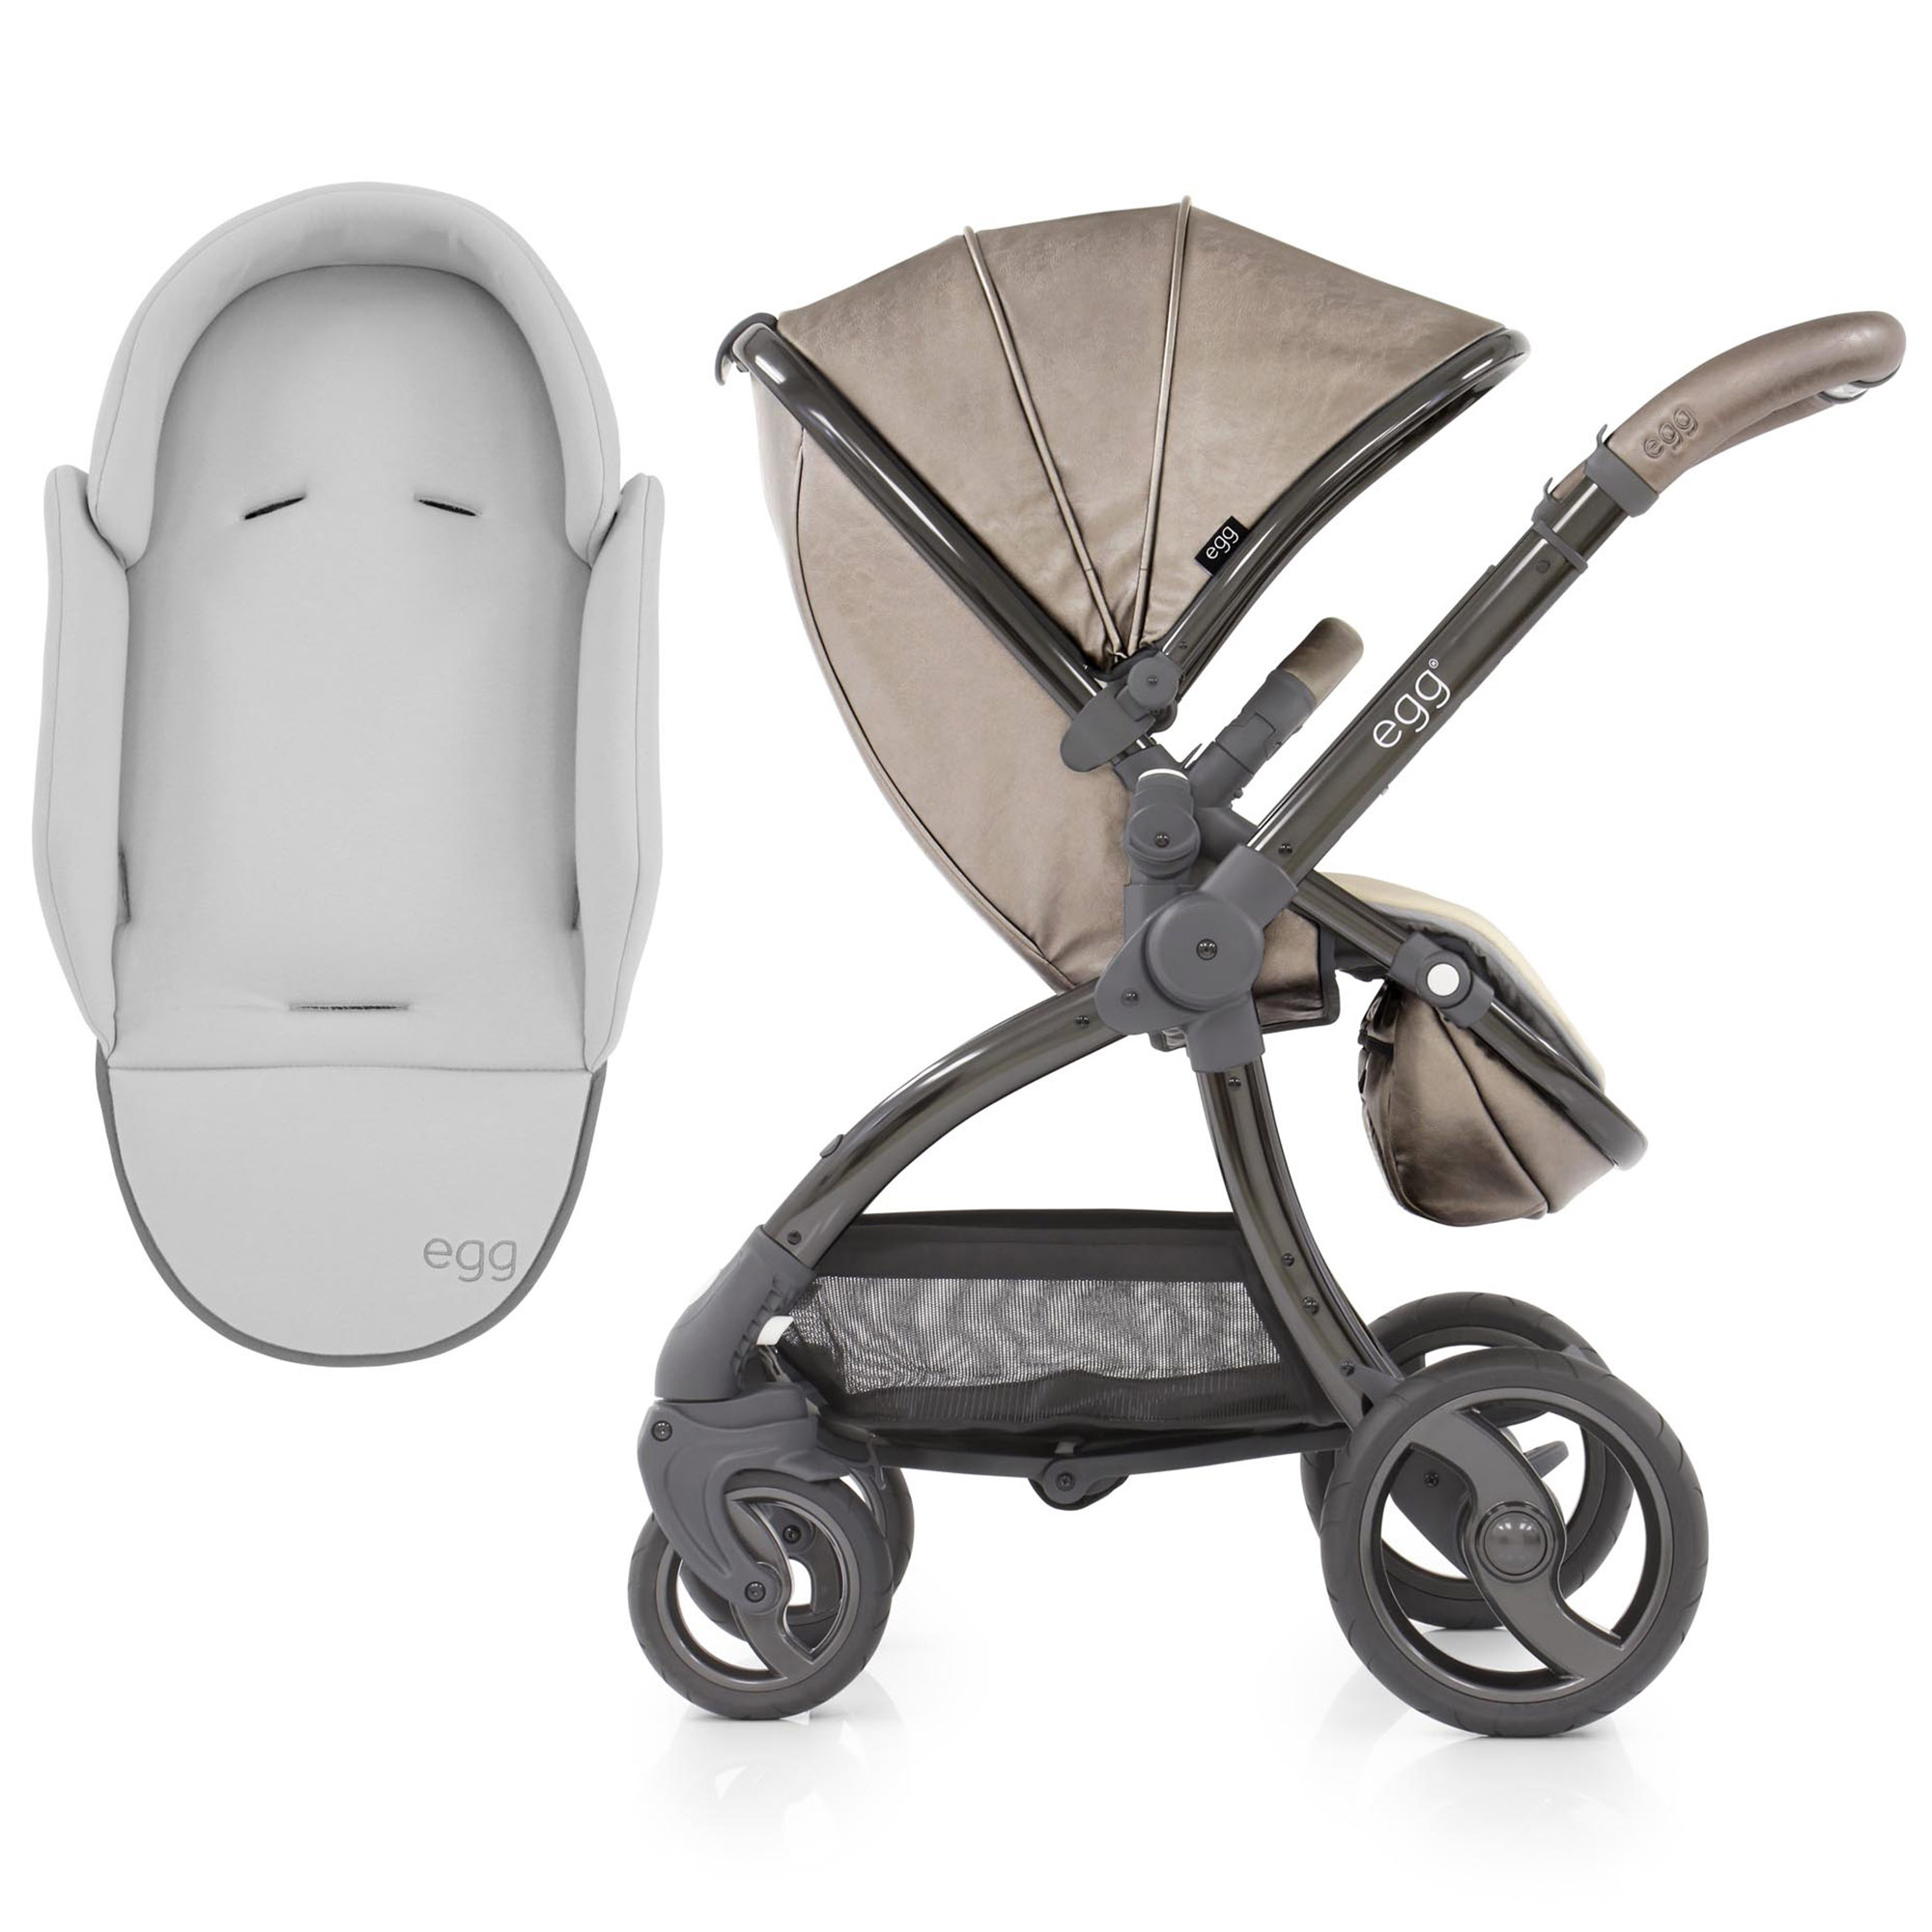 Pewter Grey Egg Footmuff Cosytoes For Egg Stroller Brand New Boxed